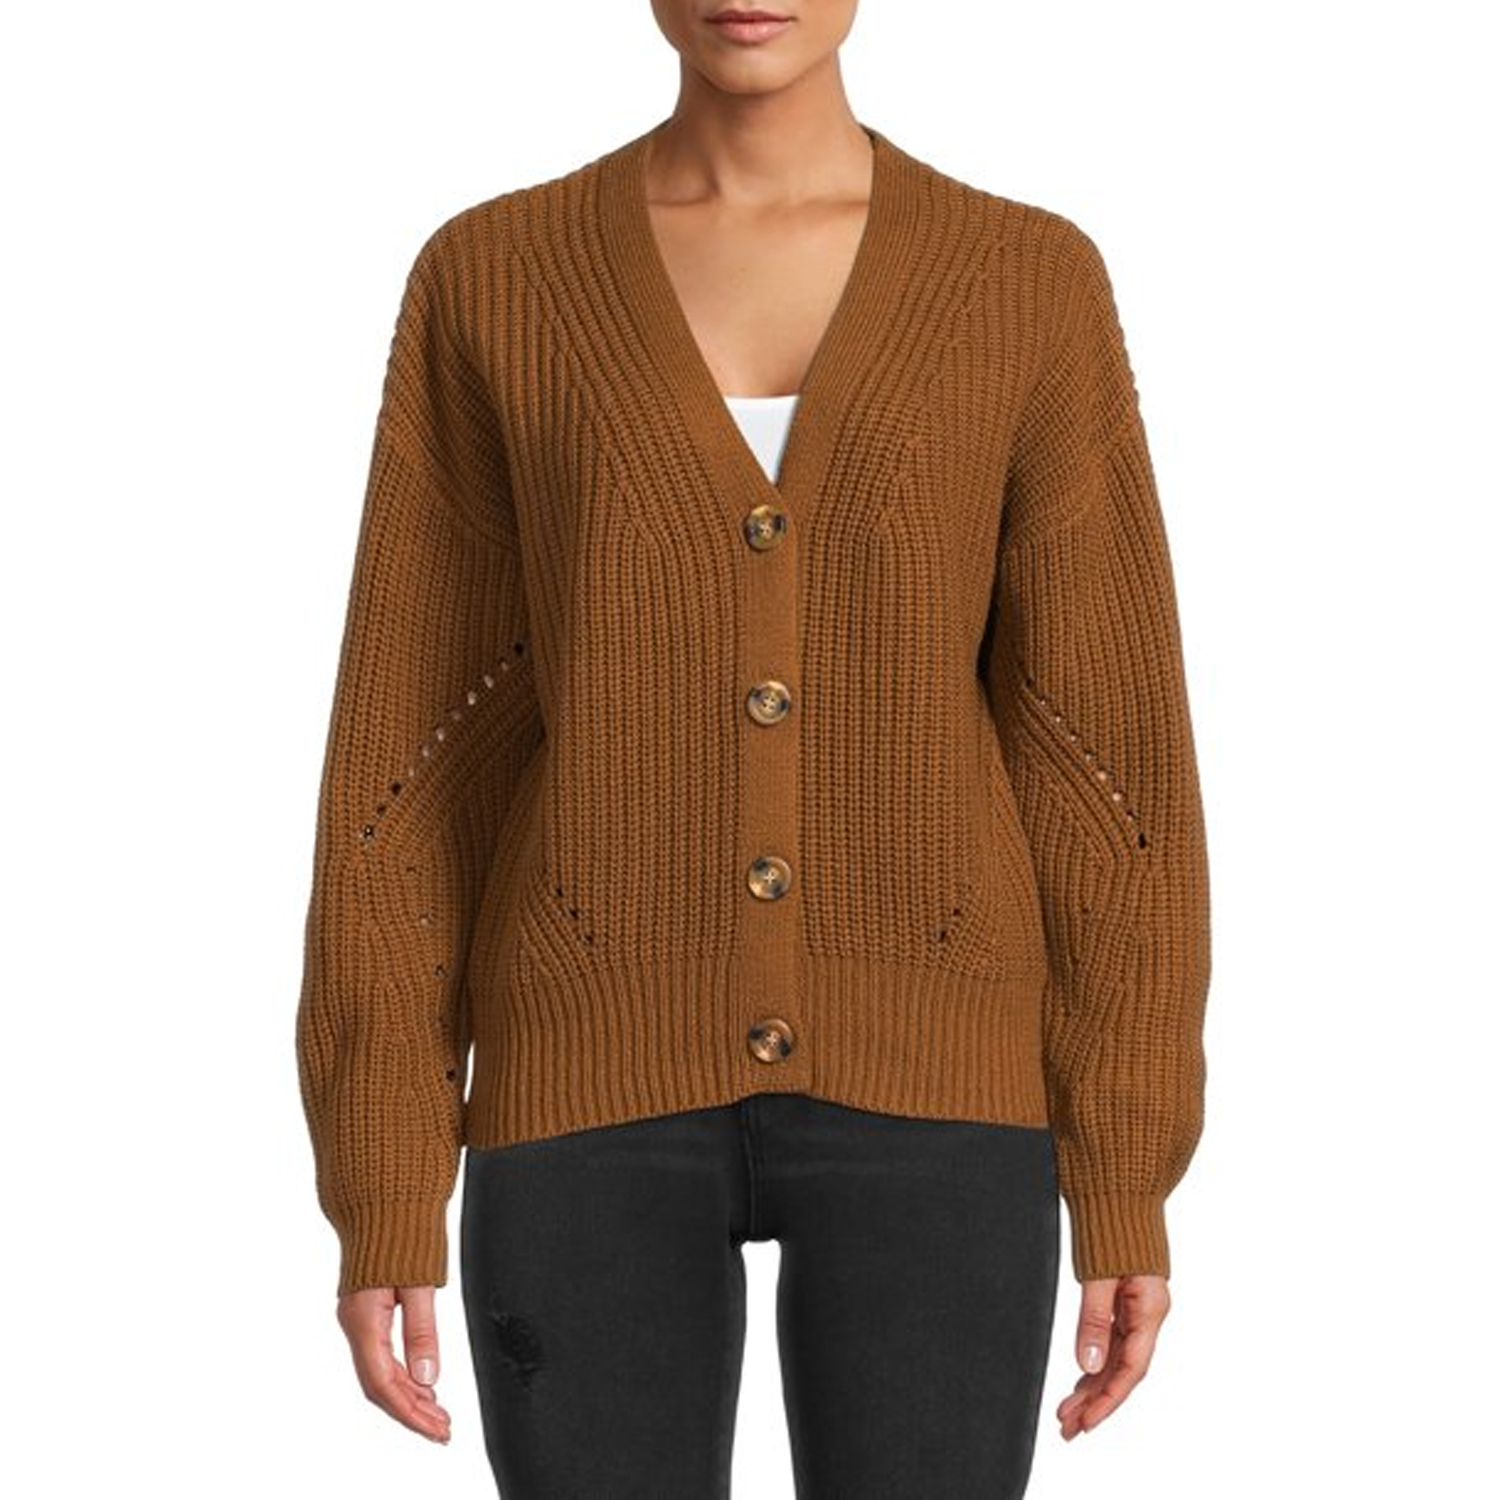 woman wearing brown cardigan and black jeans